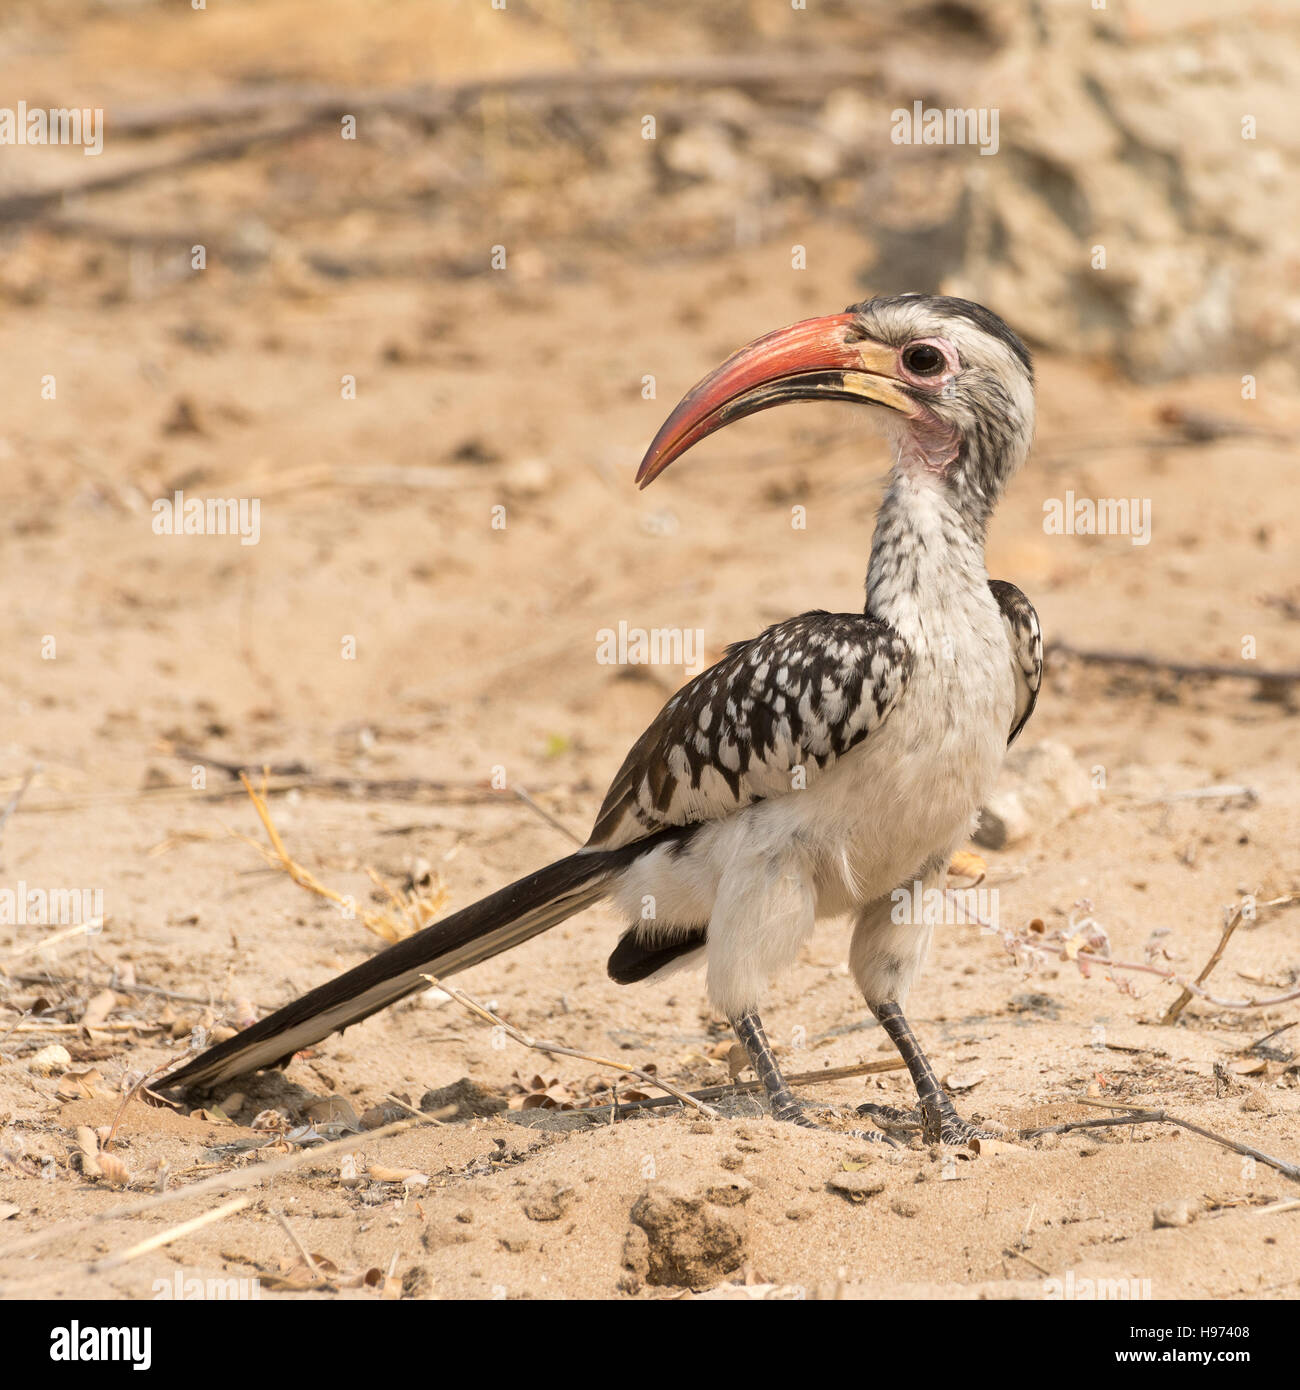 Portrait of a Red Billed Hornbill (Toko), seen in namibia, africa. - Stock Image